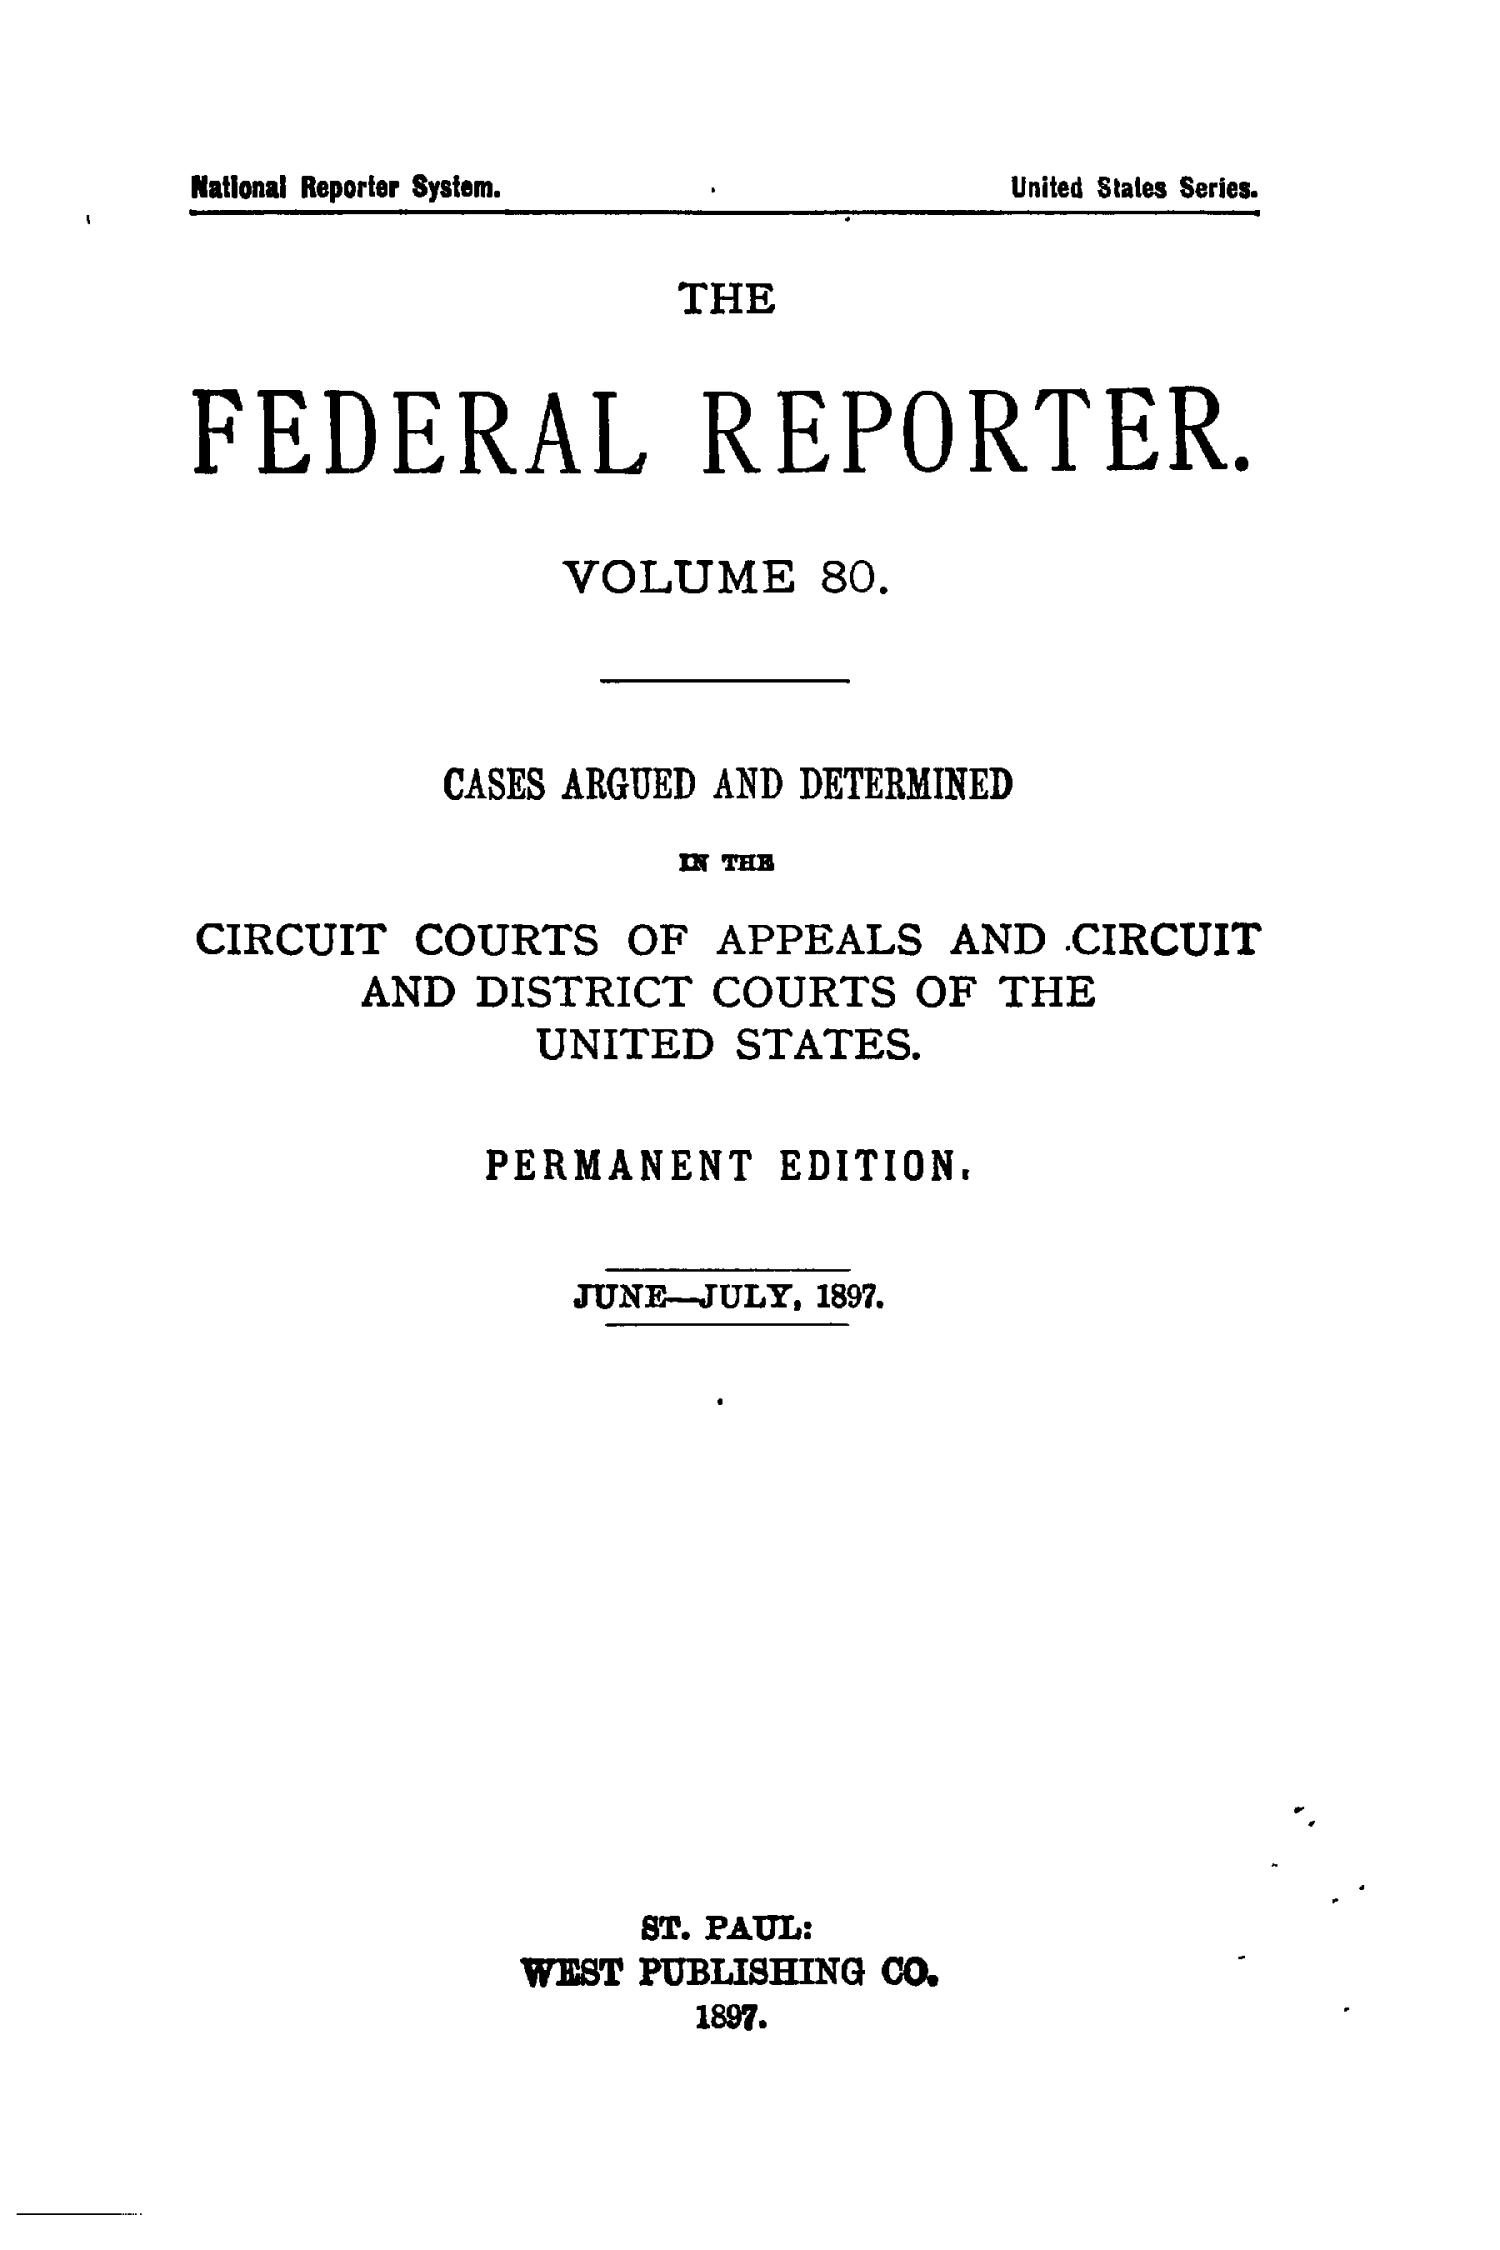 The Federal Reporter. Volume 80 Cases Argued and Determined in the Circuit Courts of Appeals and Circuit and District Courts of the United States. June-July, 1897.                                                                                                      Title Page